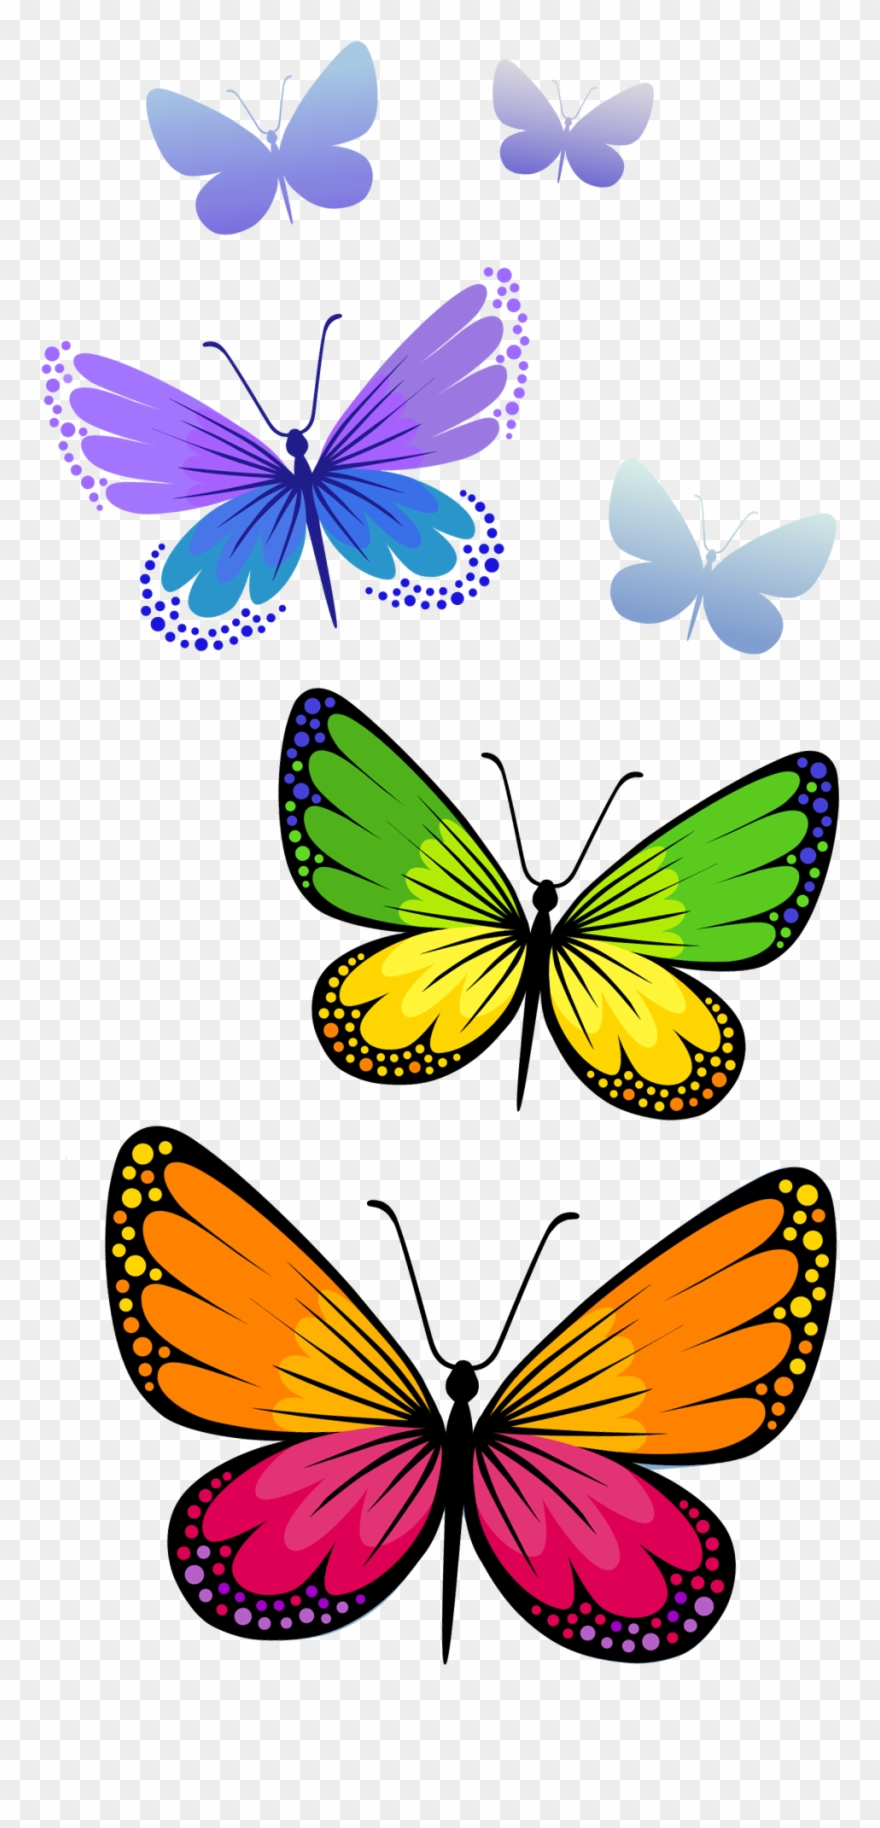 Half Butterfly Cliparts Free Download Clip Art.